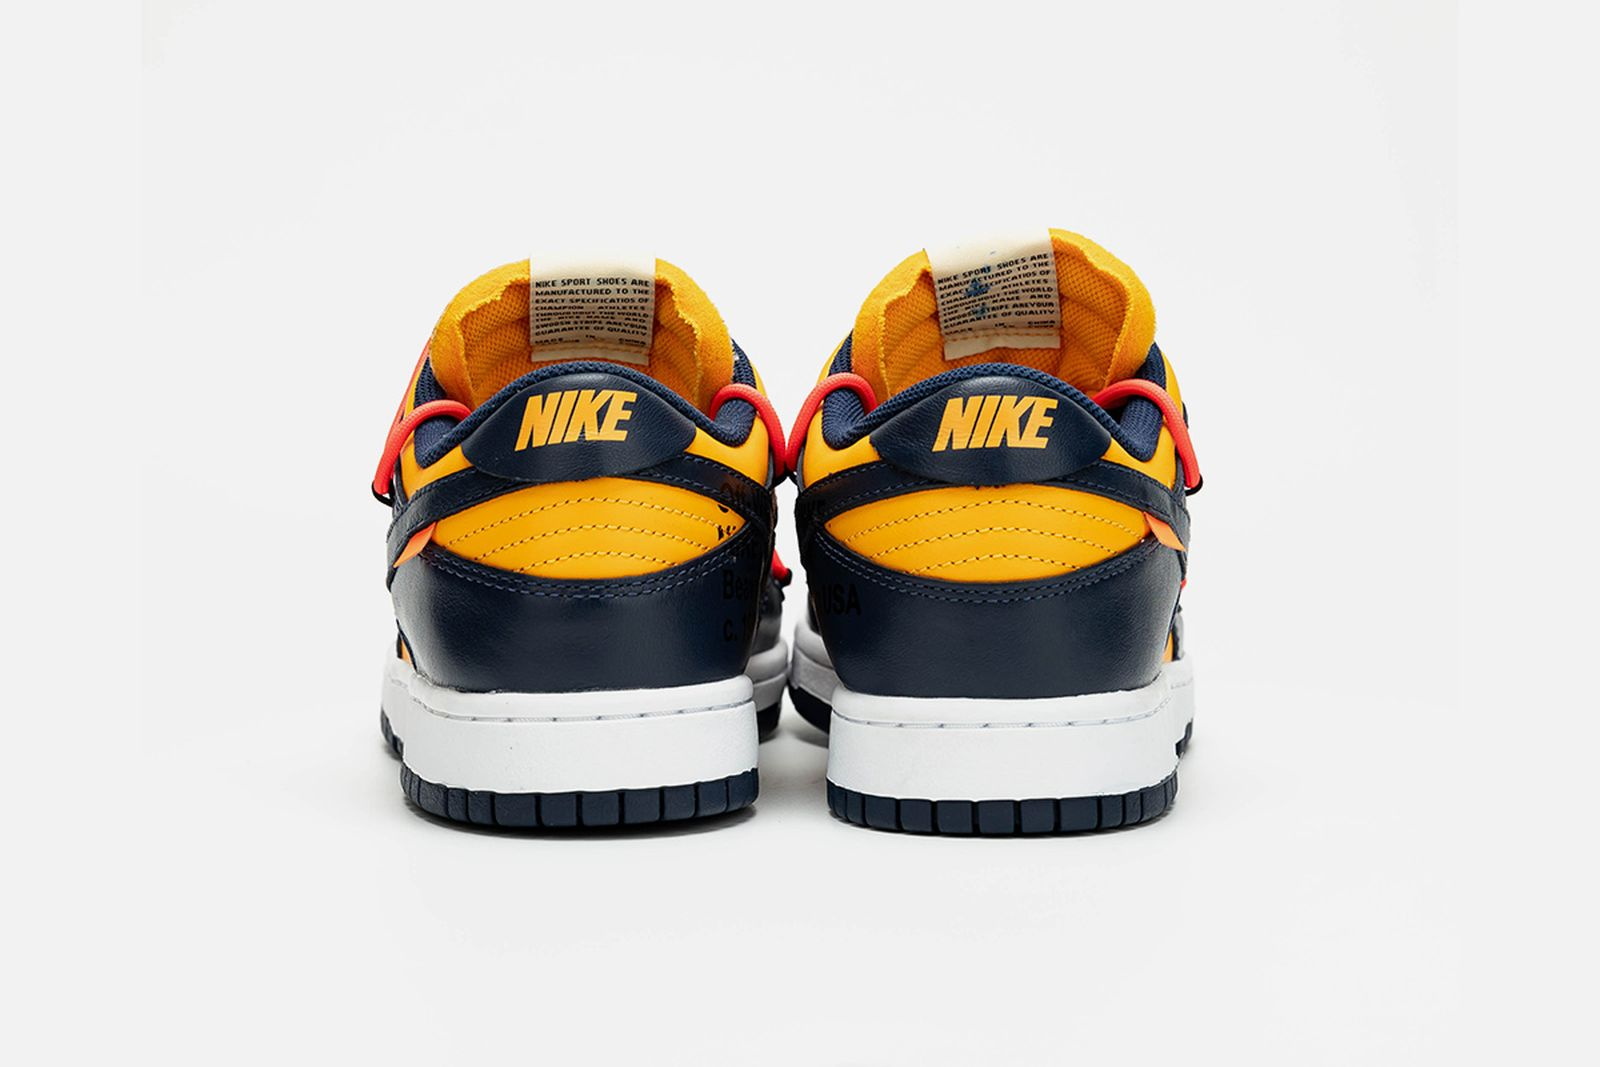 off white nike dunk low navy yellow release date price OFF-WHITE c/o Virgil Abloh nike x off-white